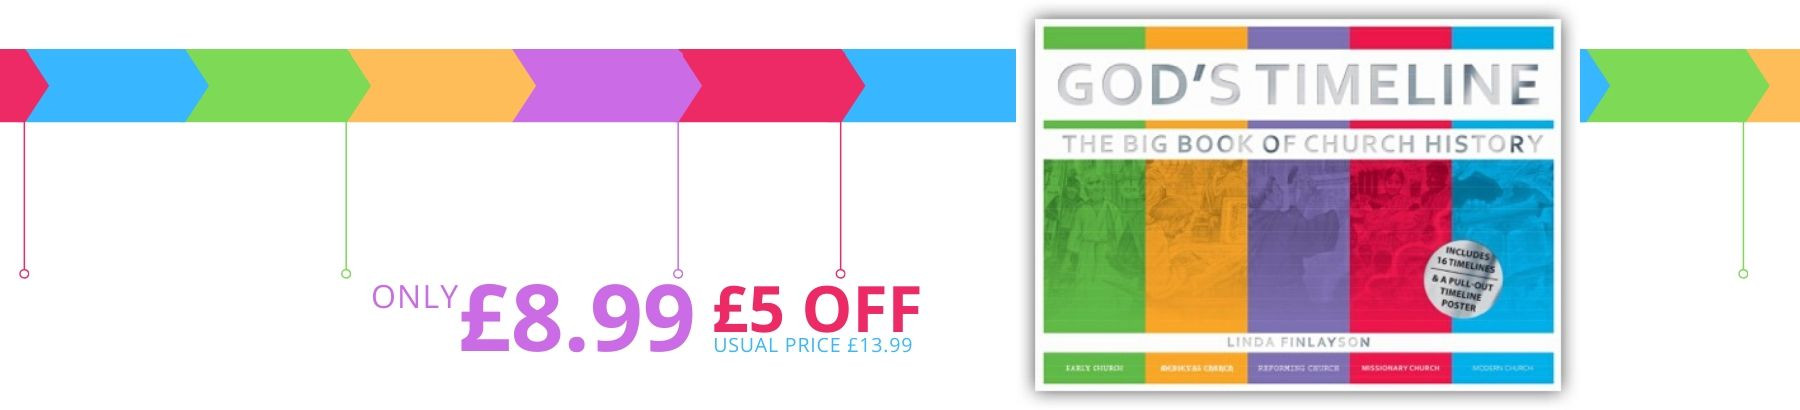 £5 off God's Timeline - while stocks last!